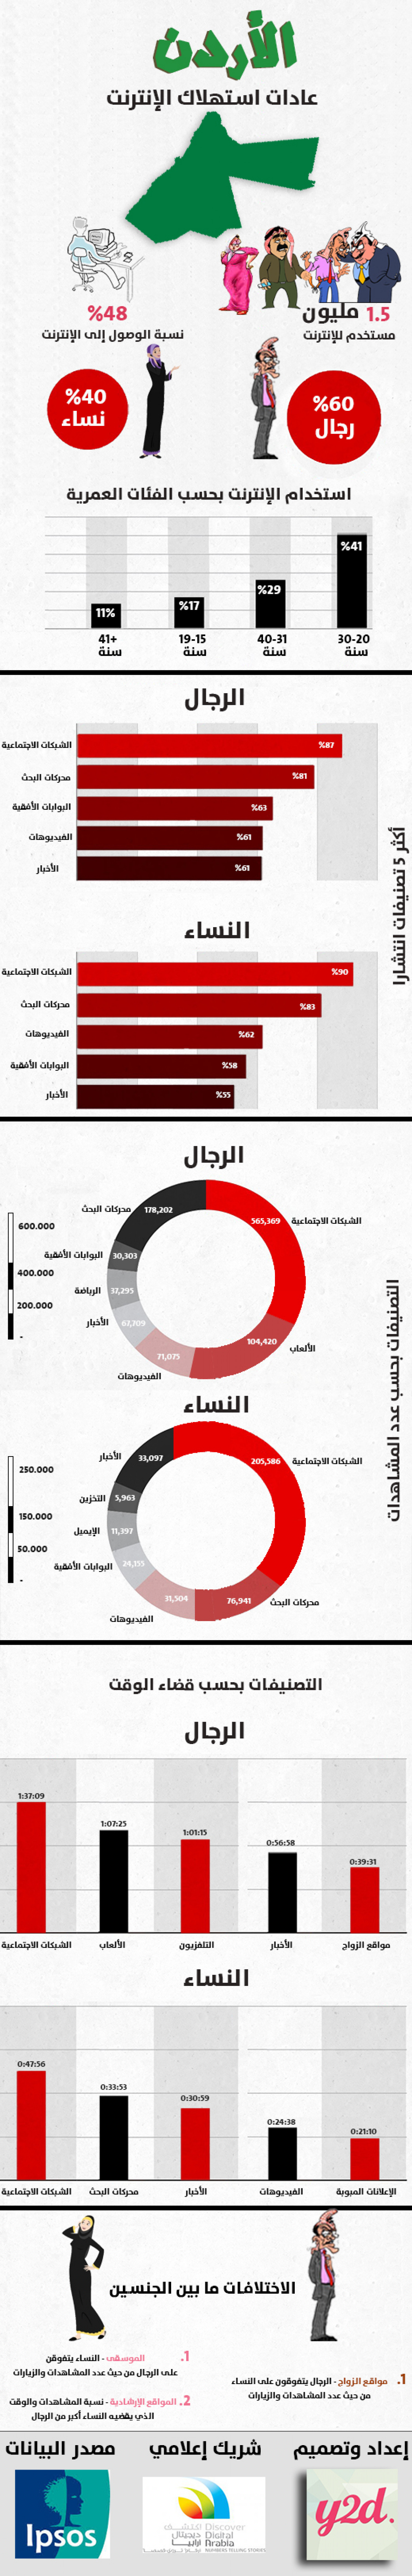 How Jordanians are using the internet Infographic